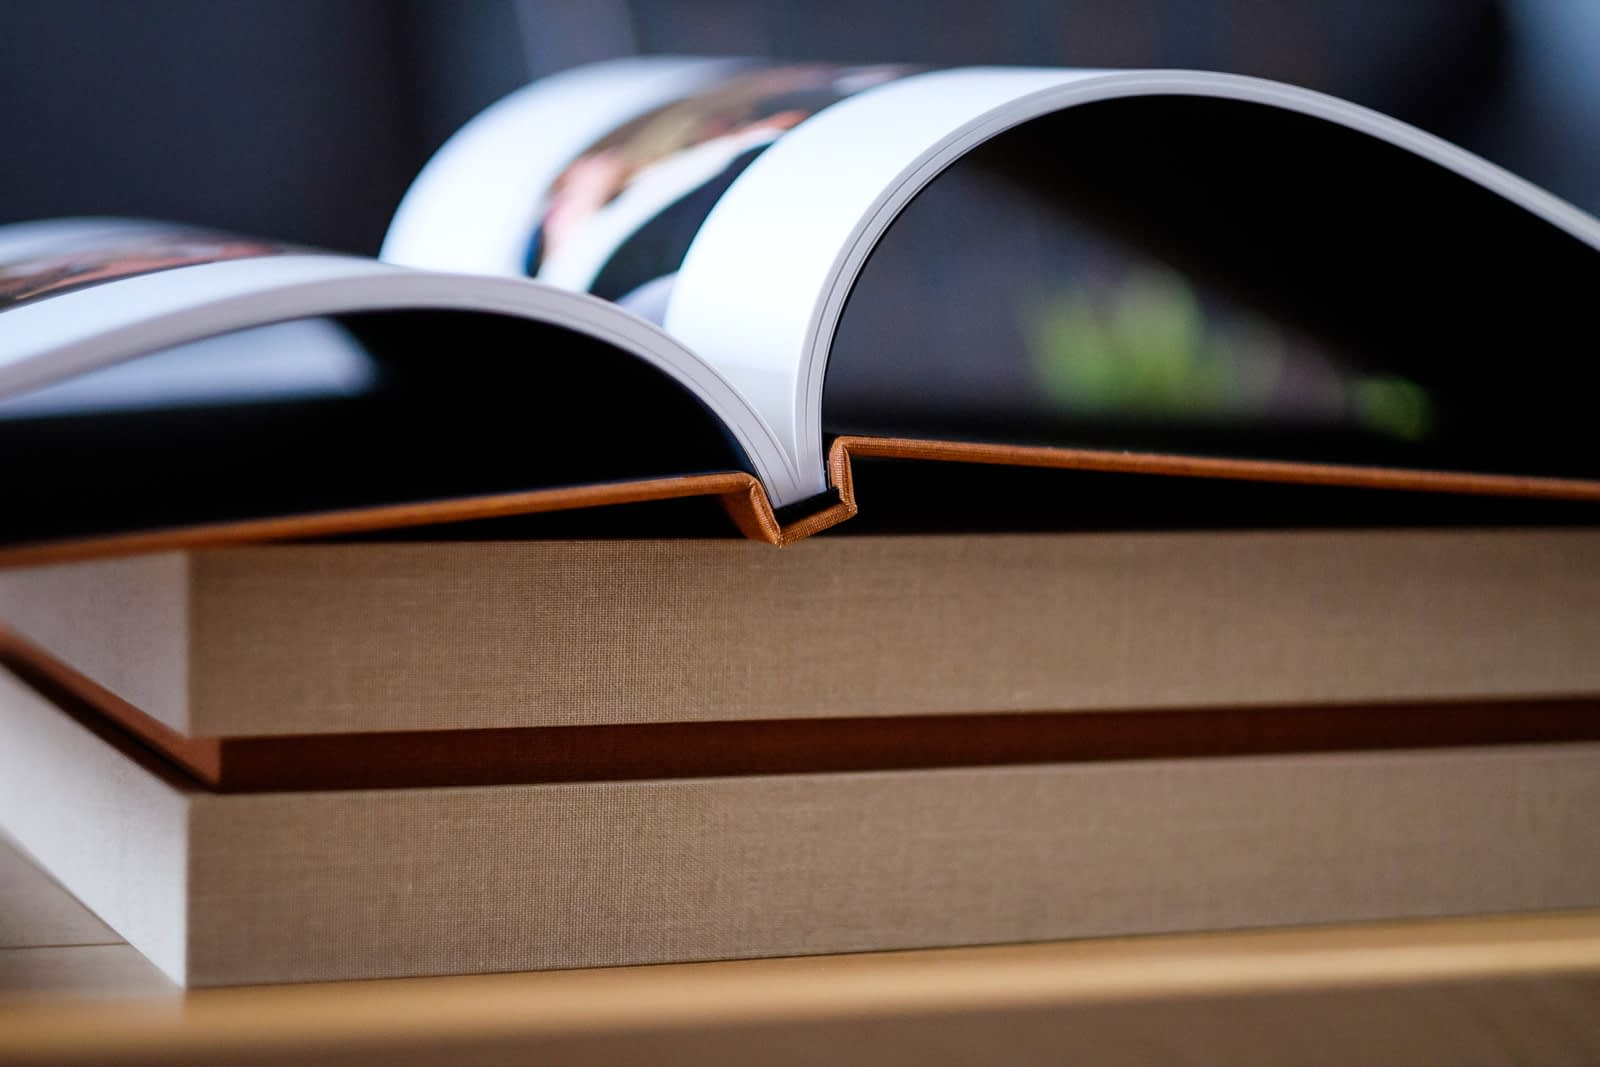 Close up detail of spine of wedding album with book pages open